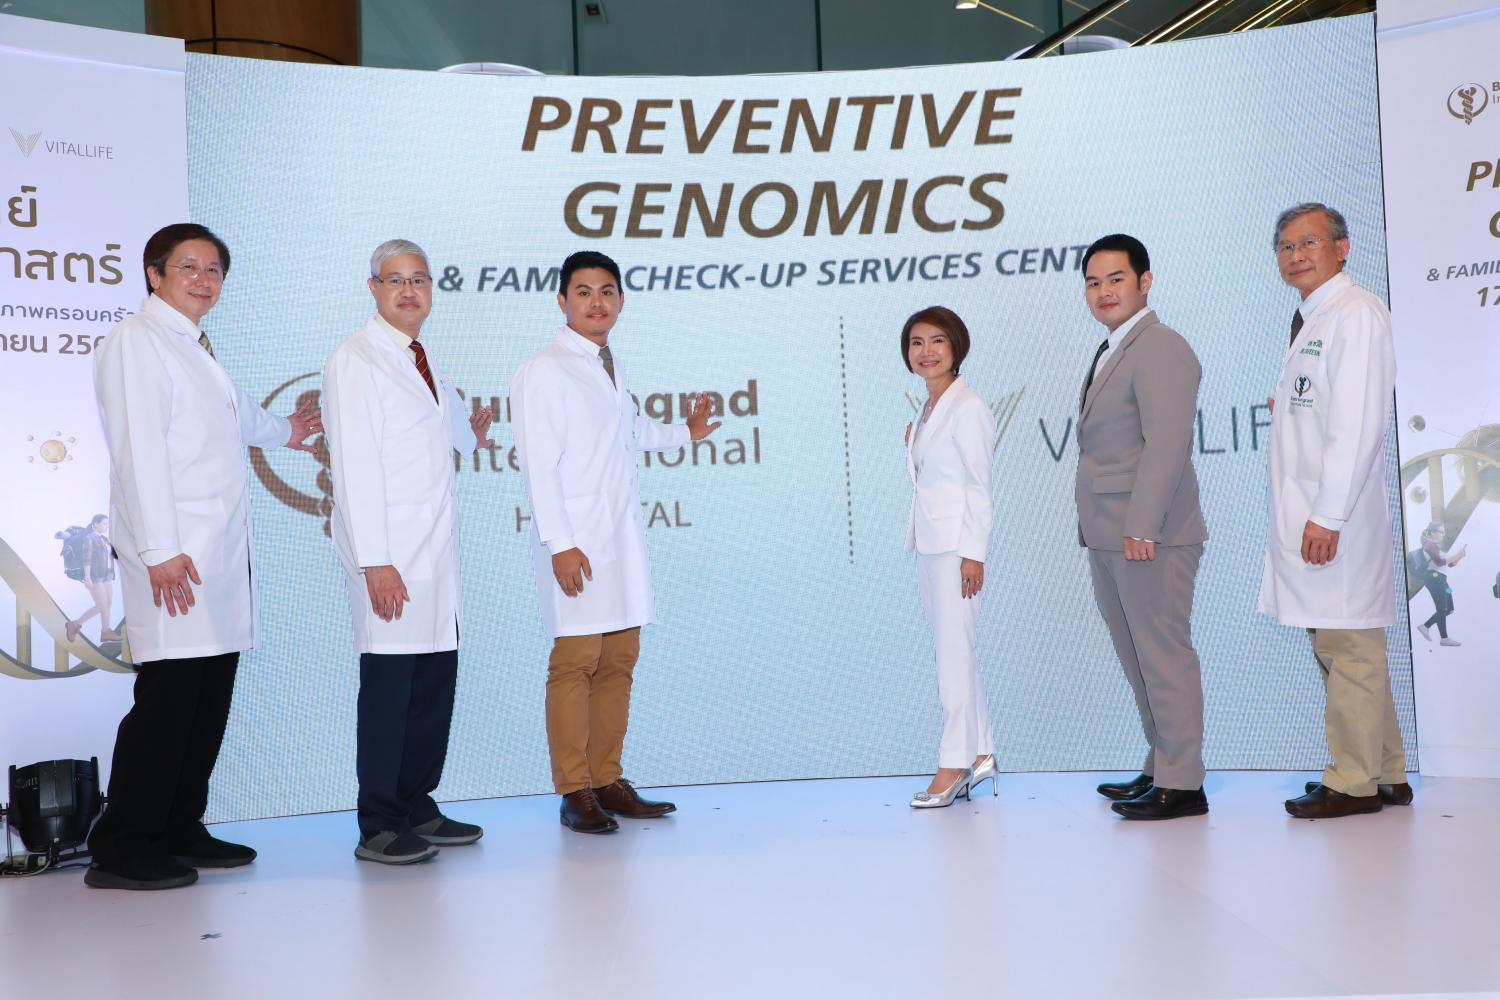 Bumrungrad Hospital is launching a preventive genomics and family check-up services centre.